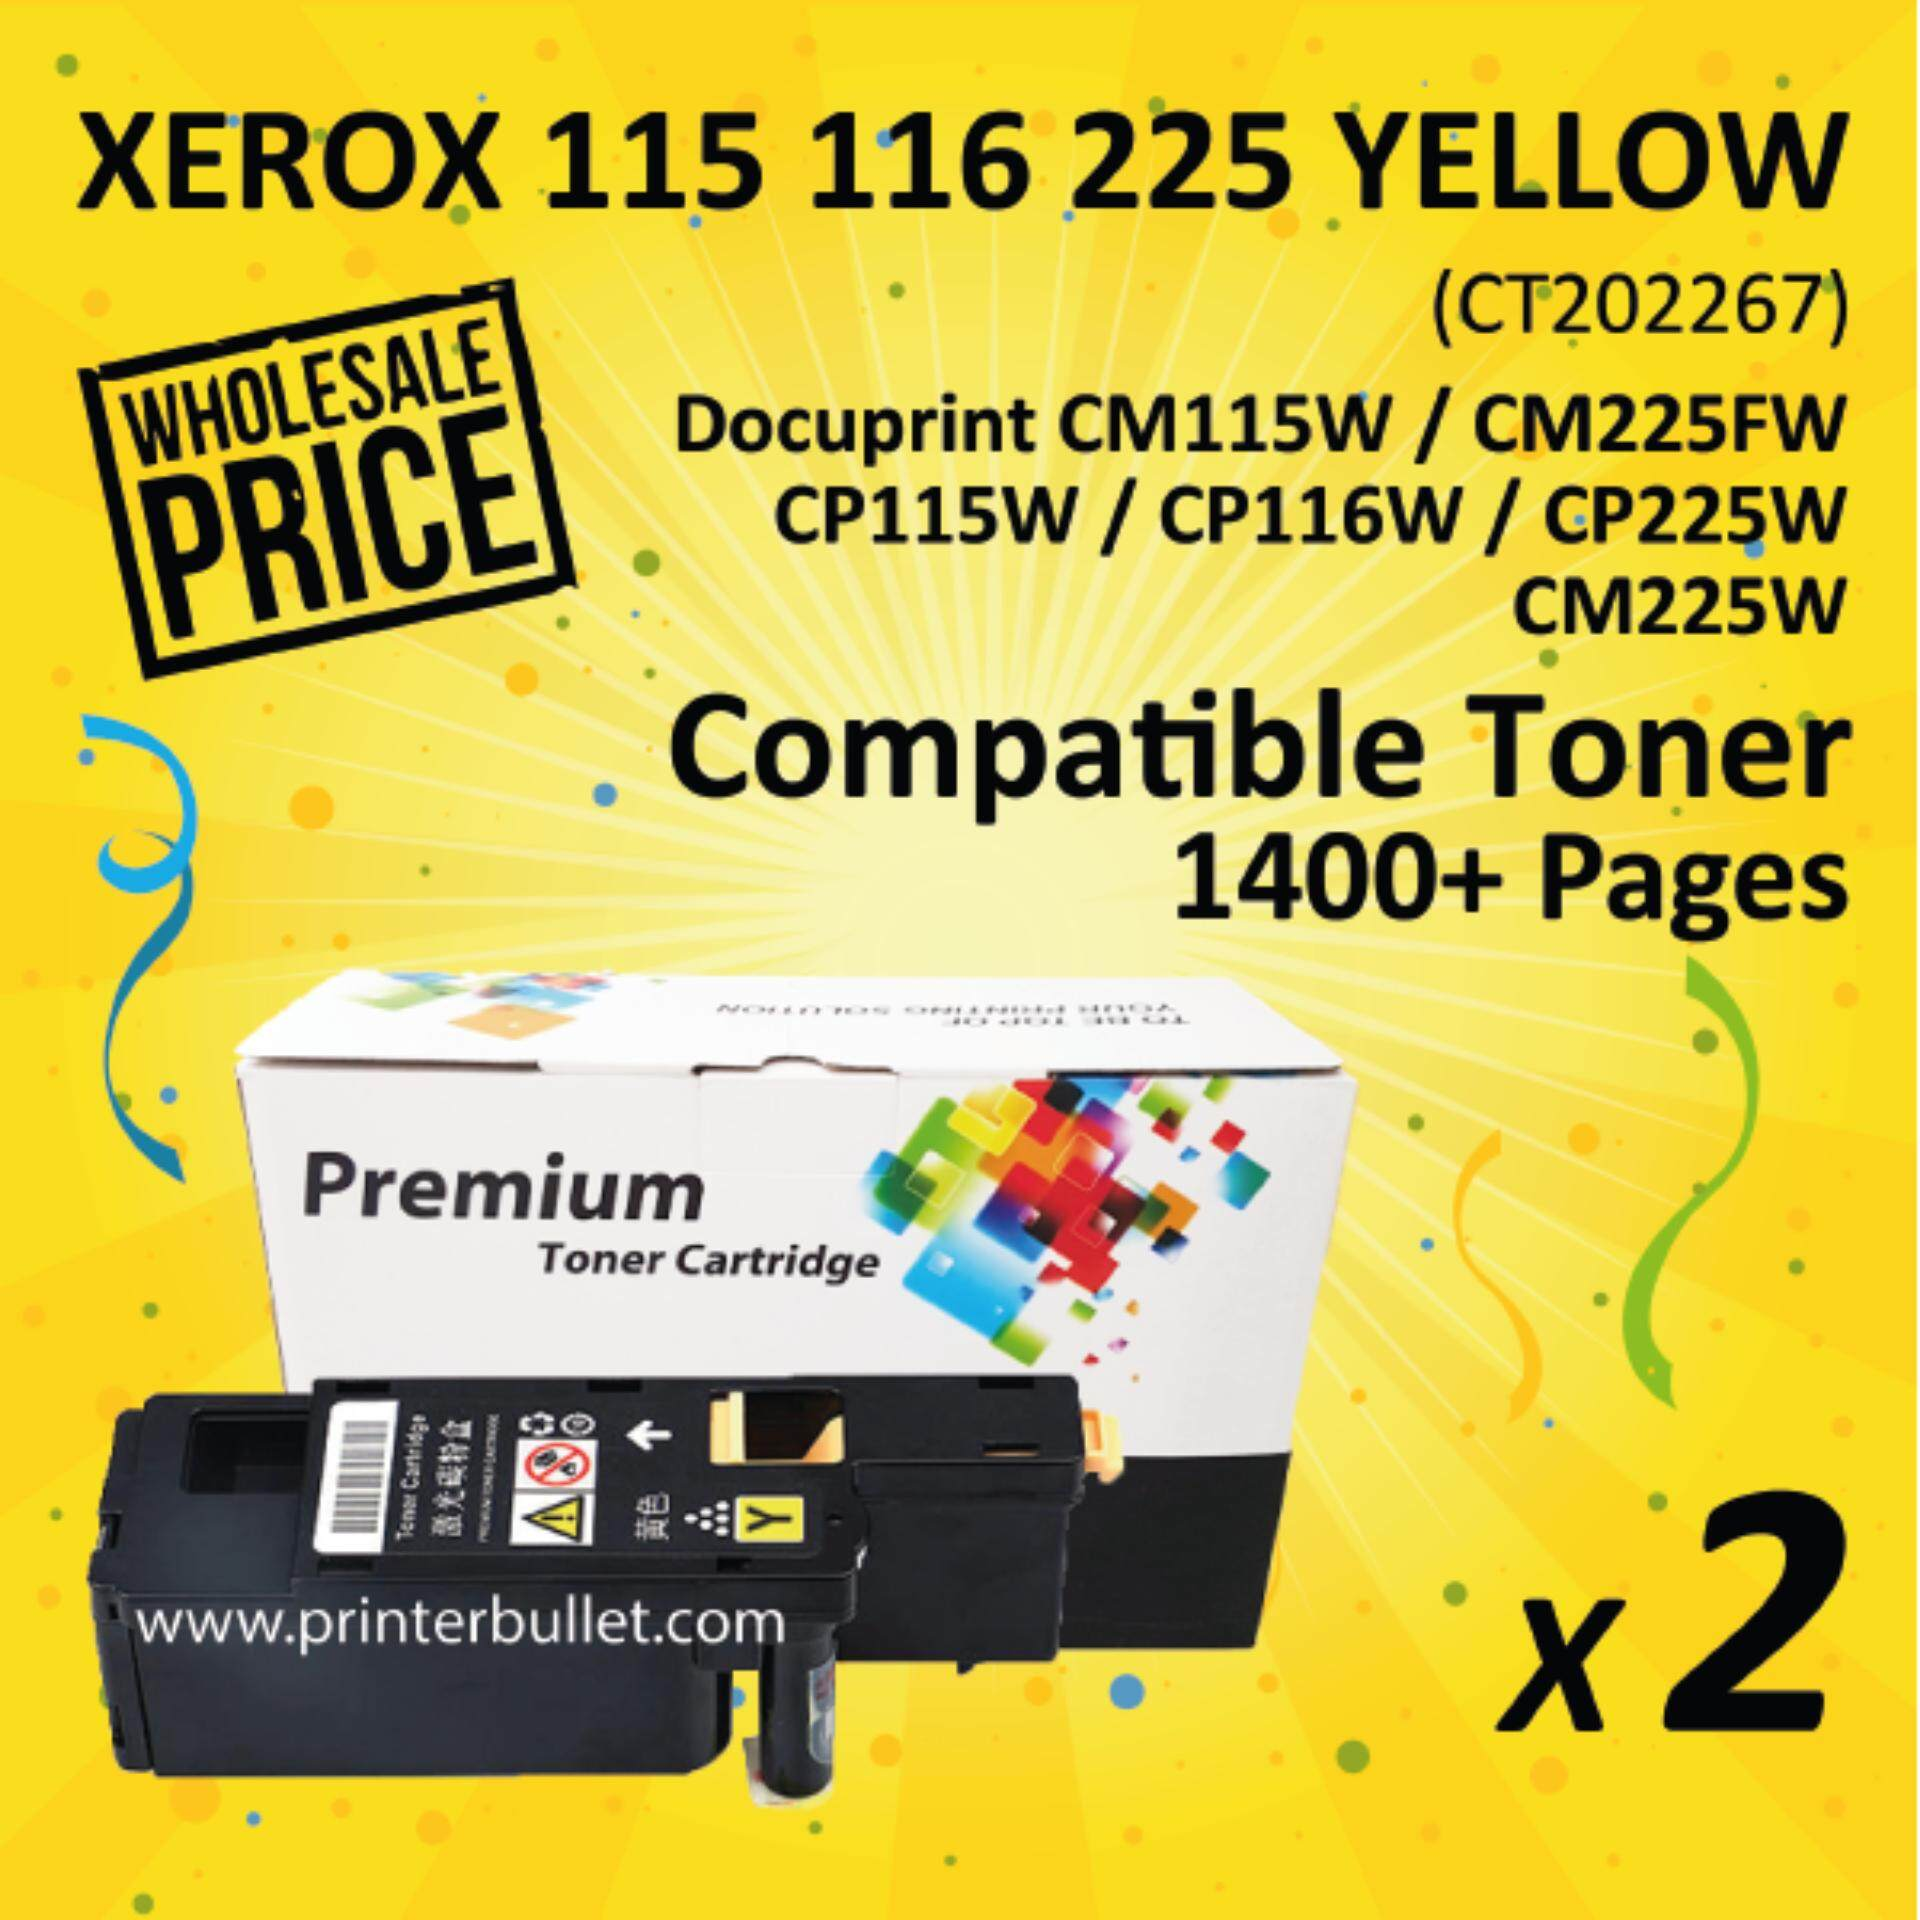 2 unit Compatible Fuji Xerox CP115/116/225 Yellow Toner Cartridge (CT202267)